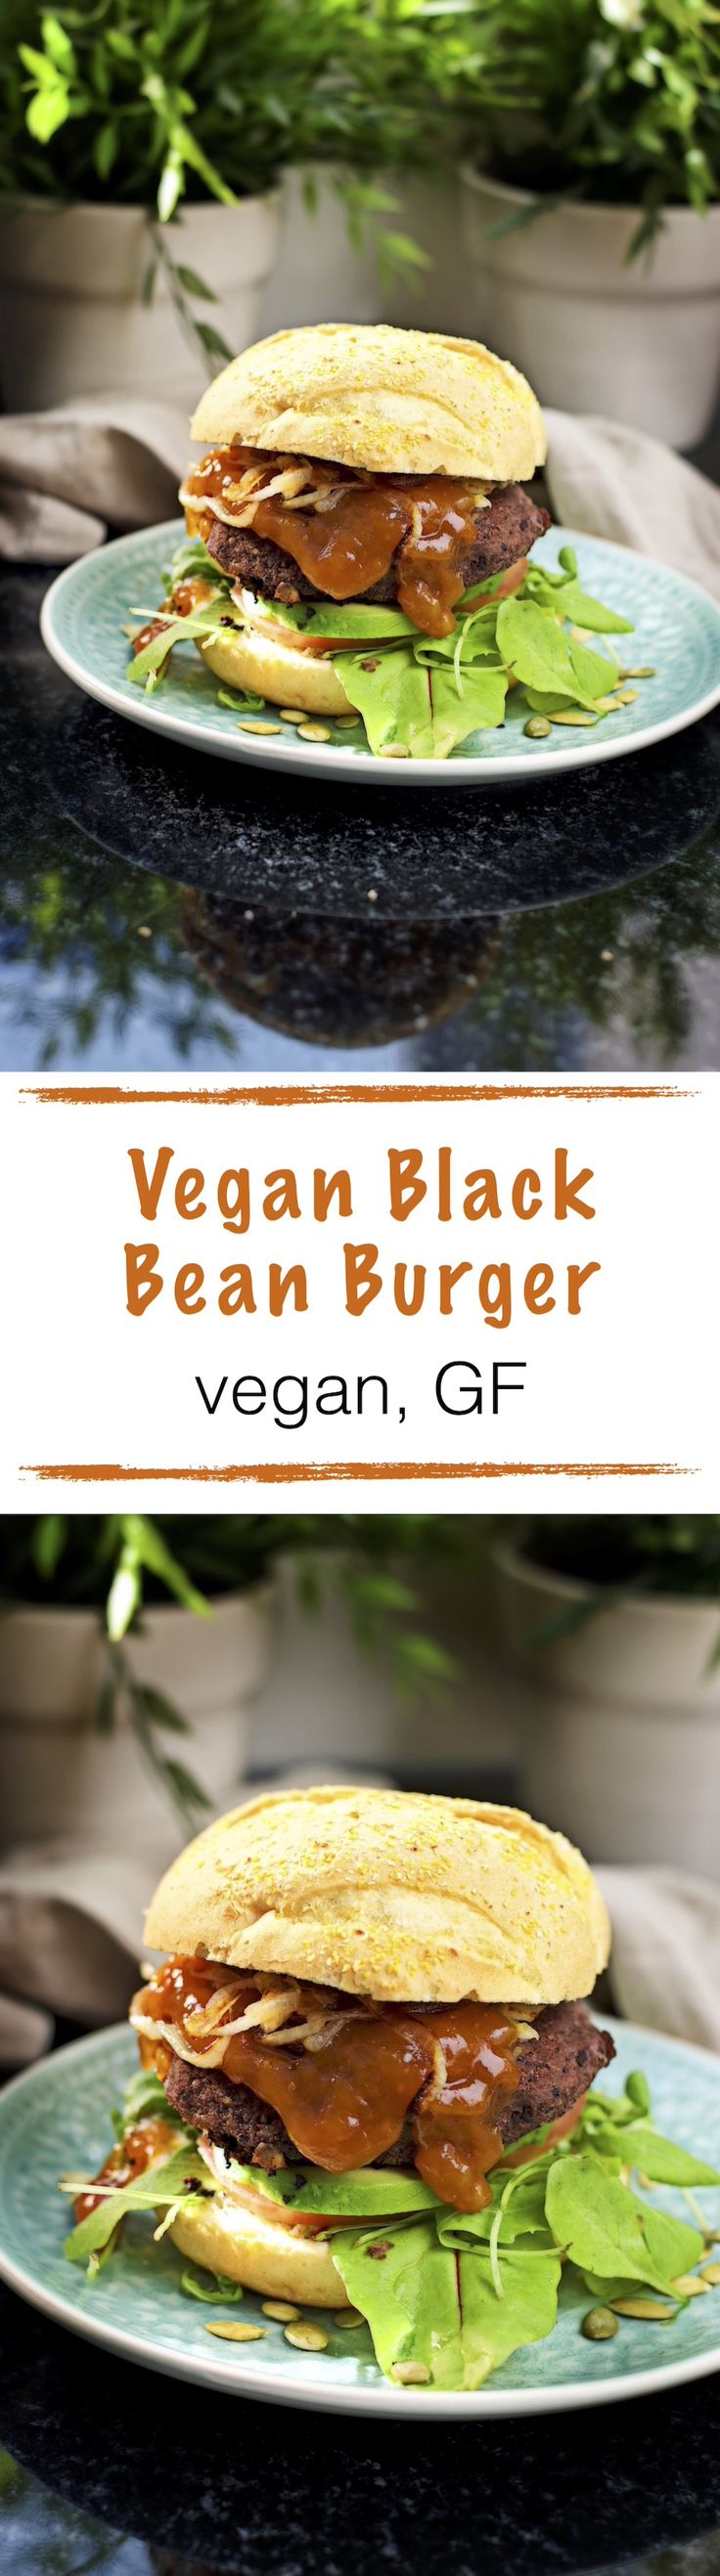 Vegan Black Bean Burger Time for another #burger night. Here is the newest addition to my #vegan burger list: A Vegan Black Bean Burger. A freshly made patty with only 3 ingredients.